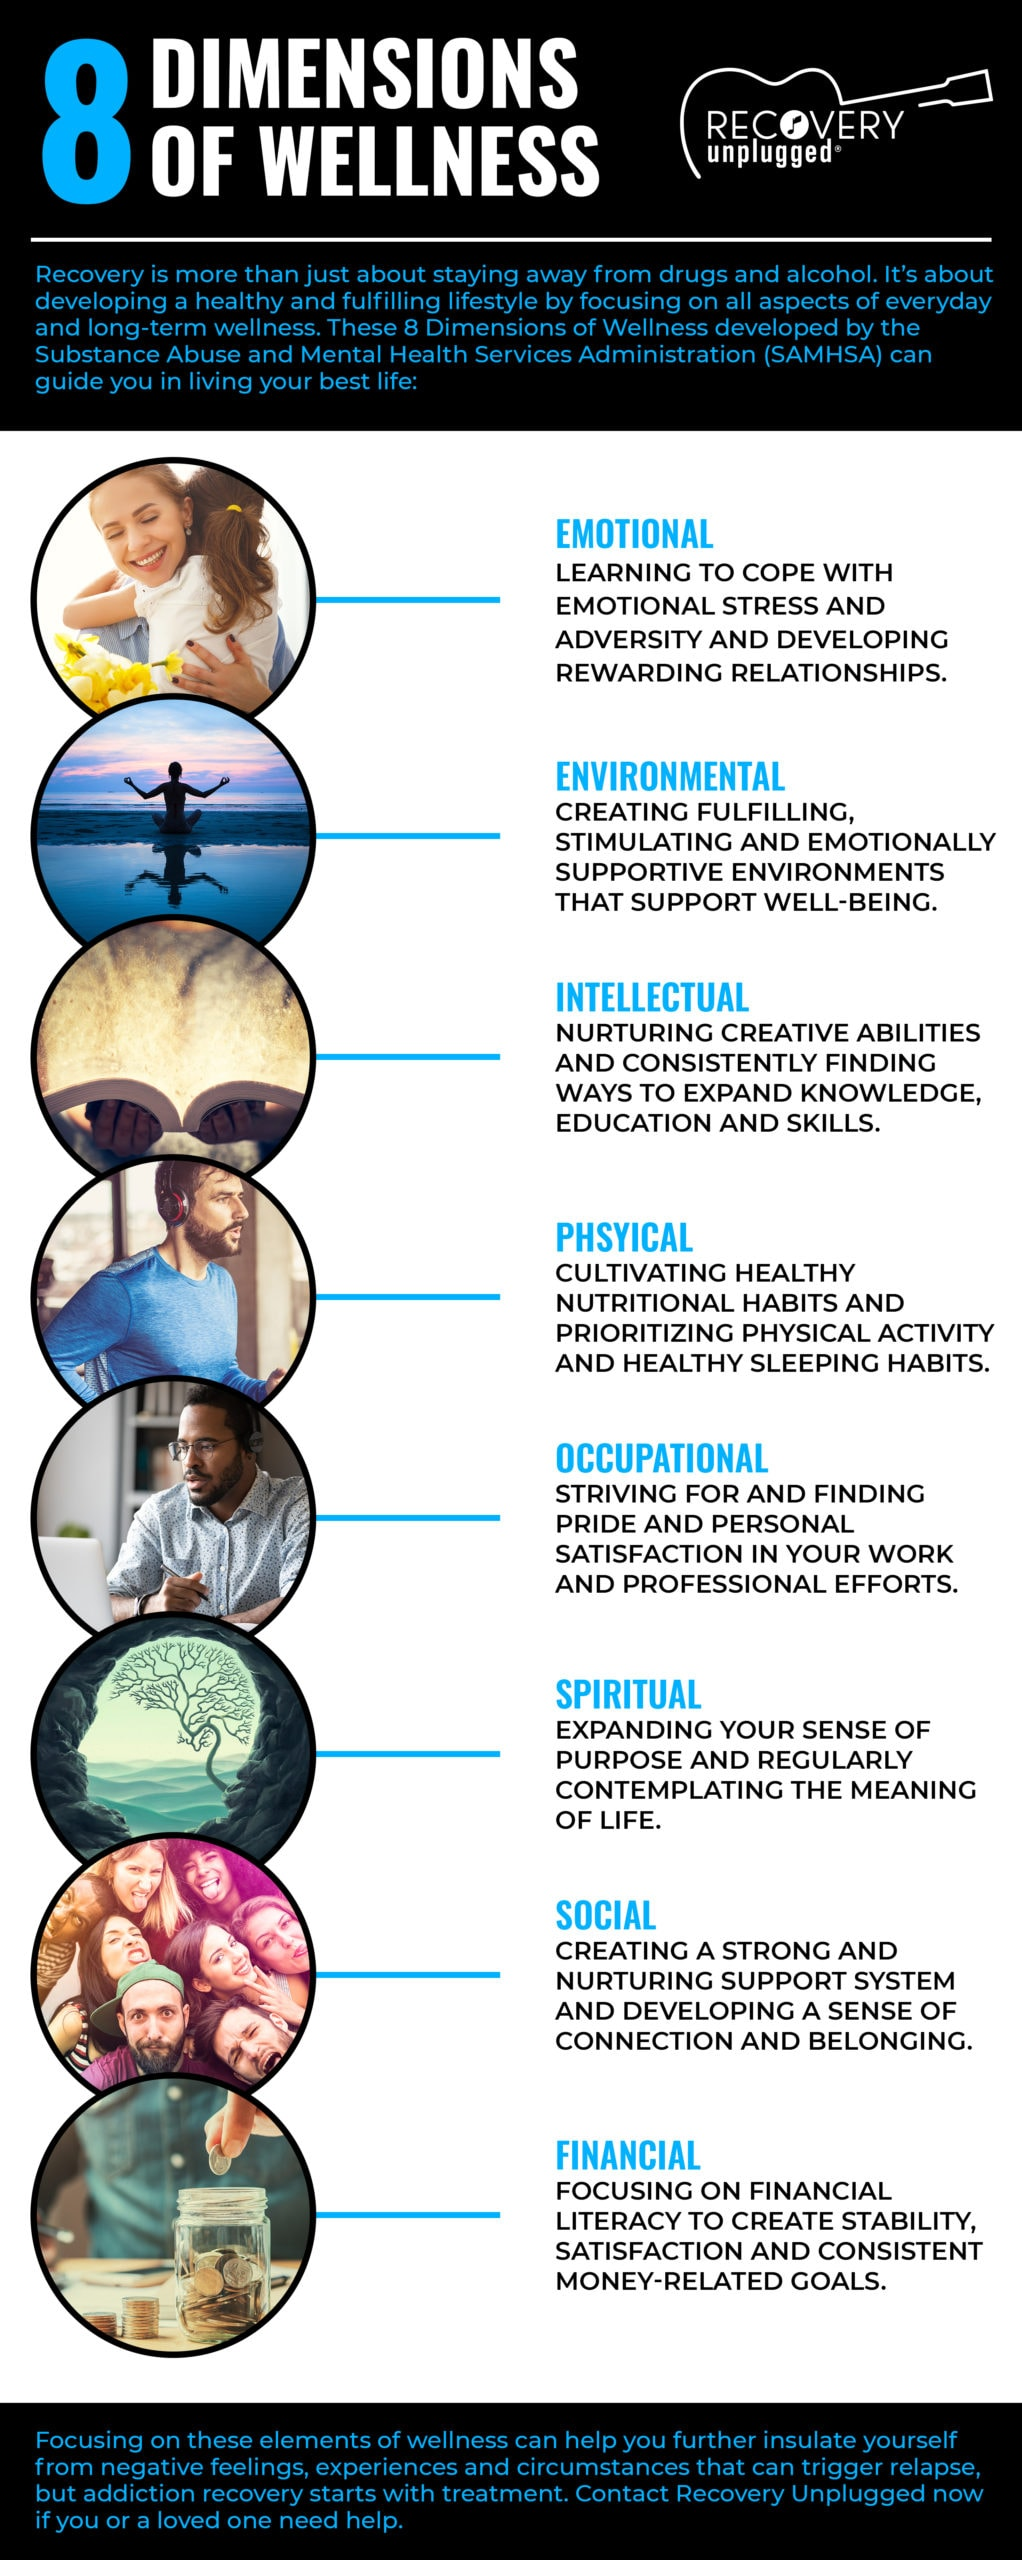 The 8 Dimensions of Wellness with Holistic Treatment